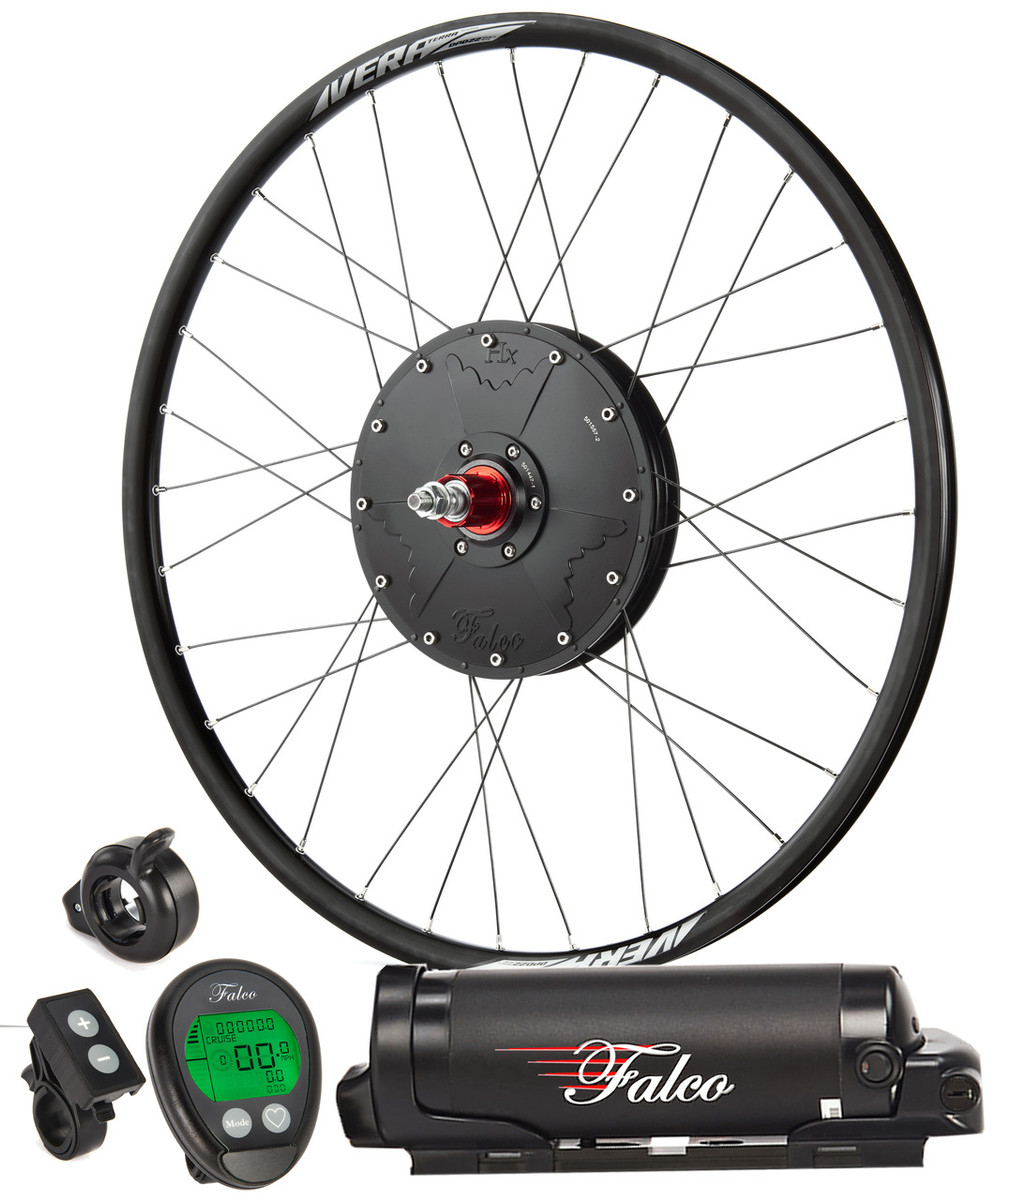 Falco e5.3 System (2017 Model) - 500W/400Wh includes fully built wheel, battery console, plus minus, throttle etc.